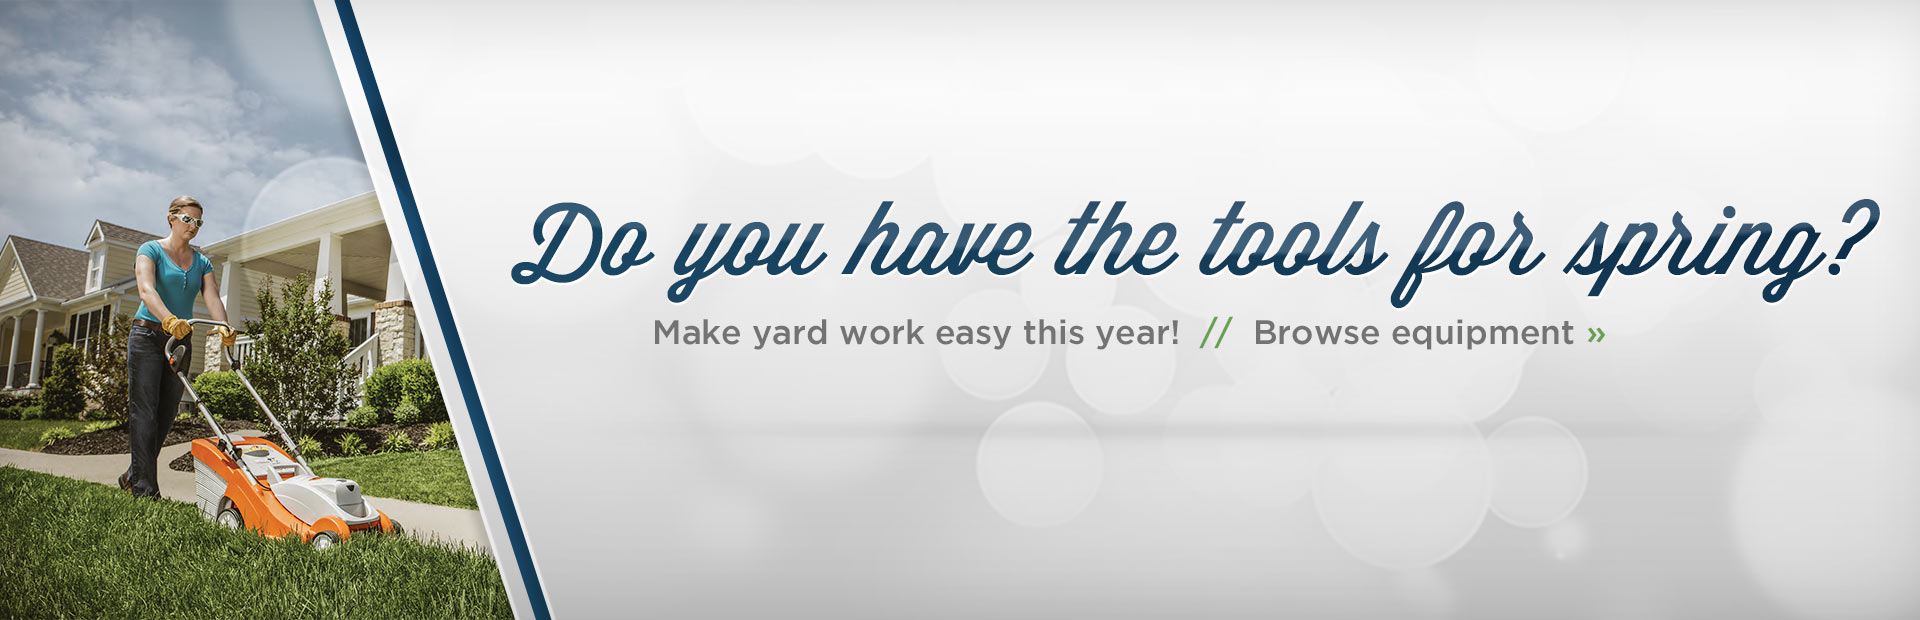 Click here to browse yard equipment.